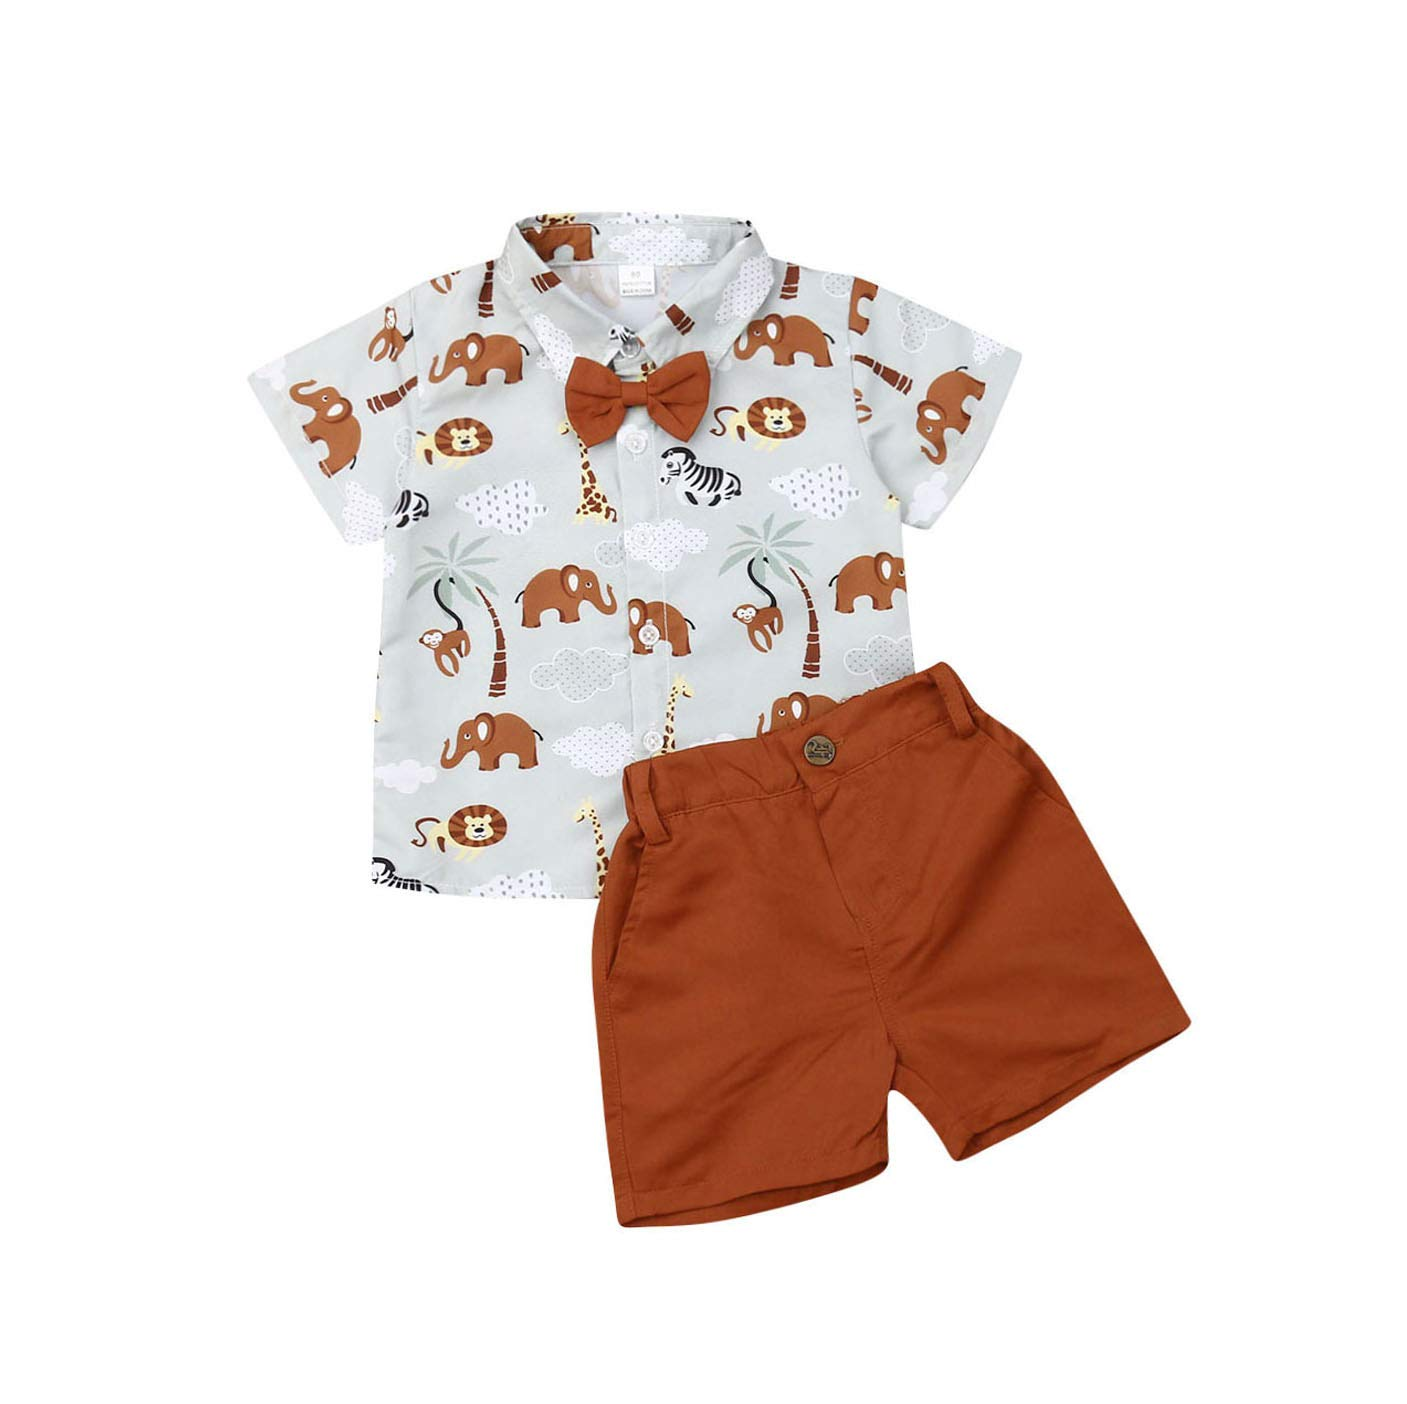 Toddler Kids Baby Boys Summer Outfits Button Down Short Sleeve Shirt Blouse Tops + Shorts Pants Playwear Gentleman Clothes